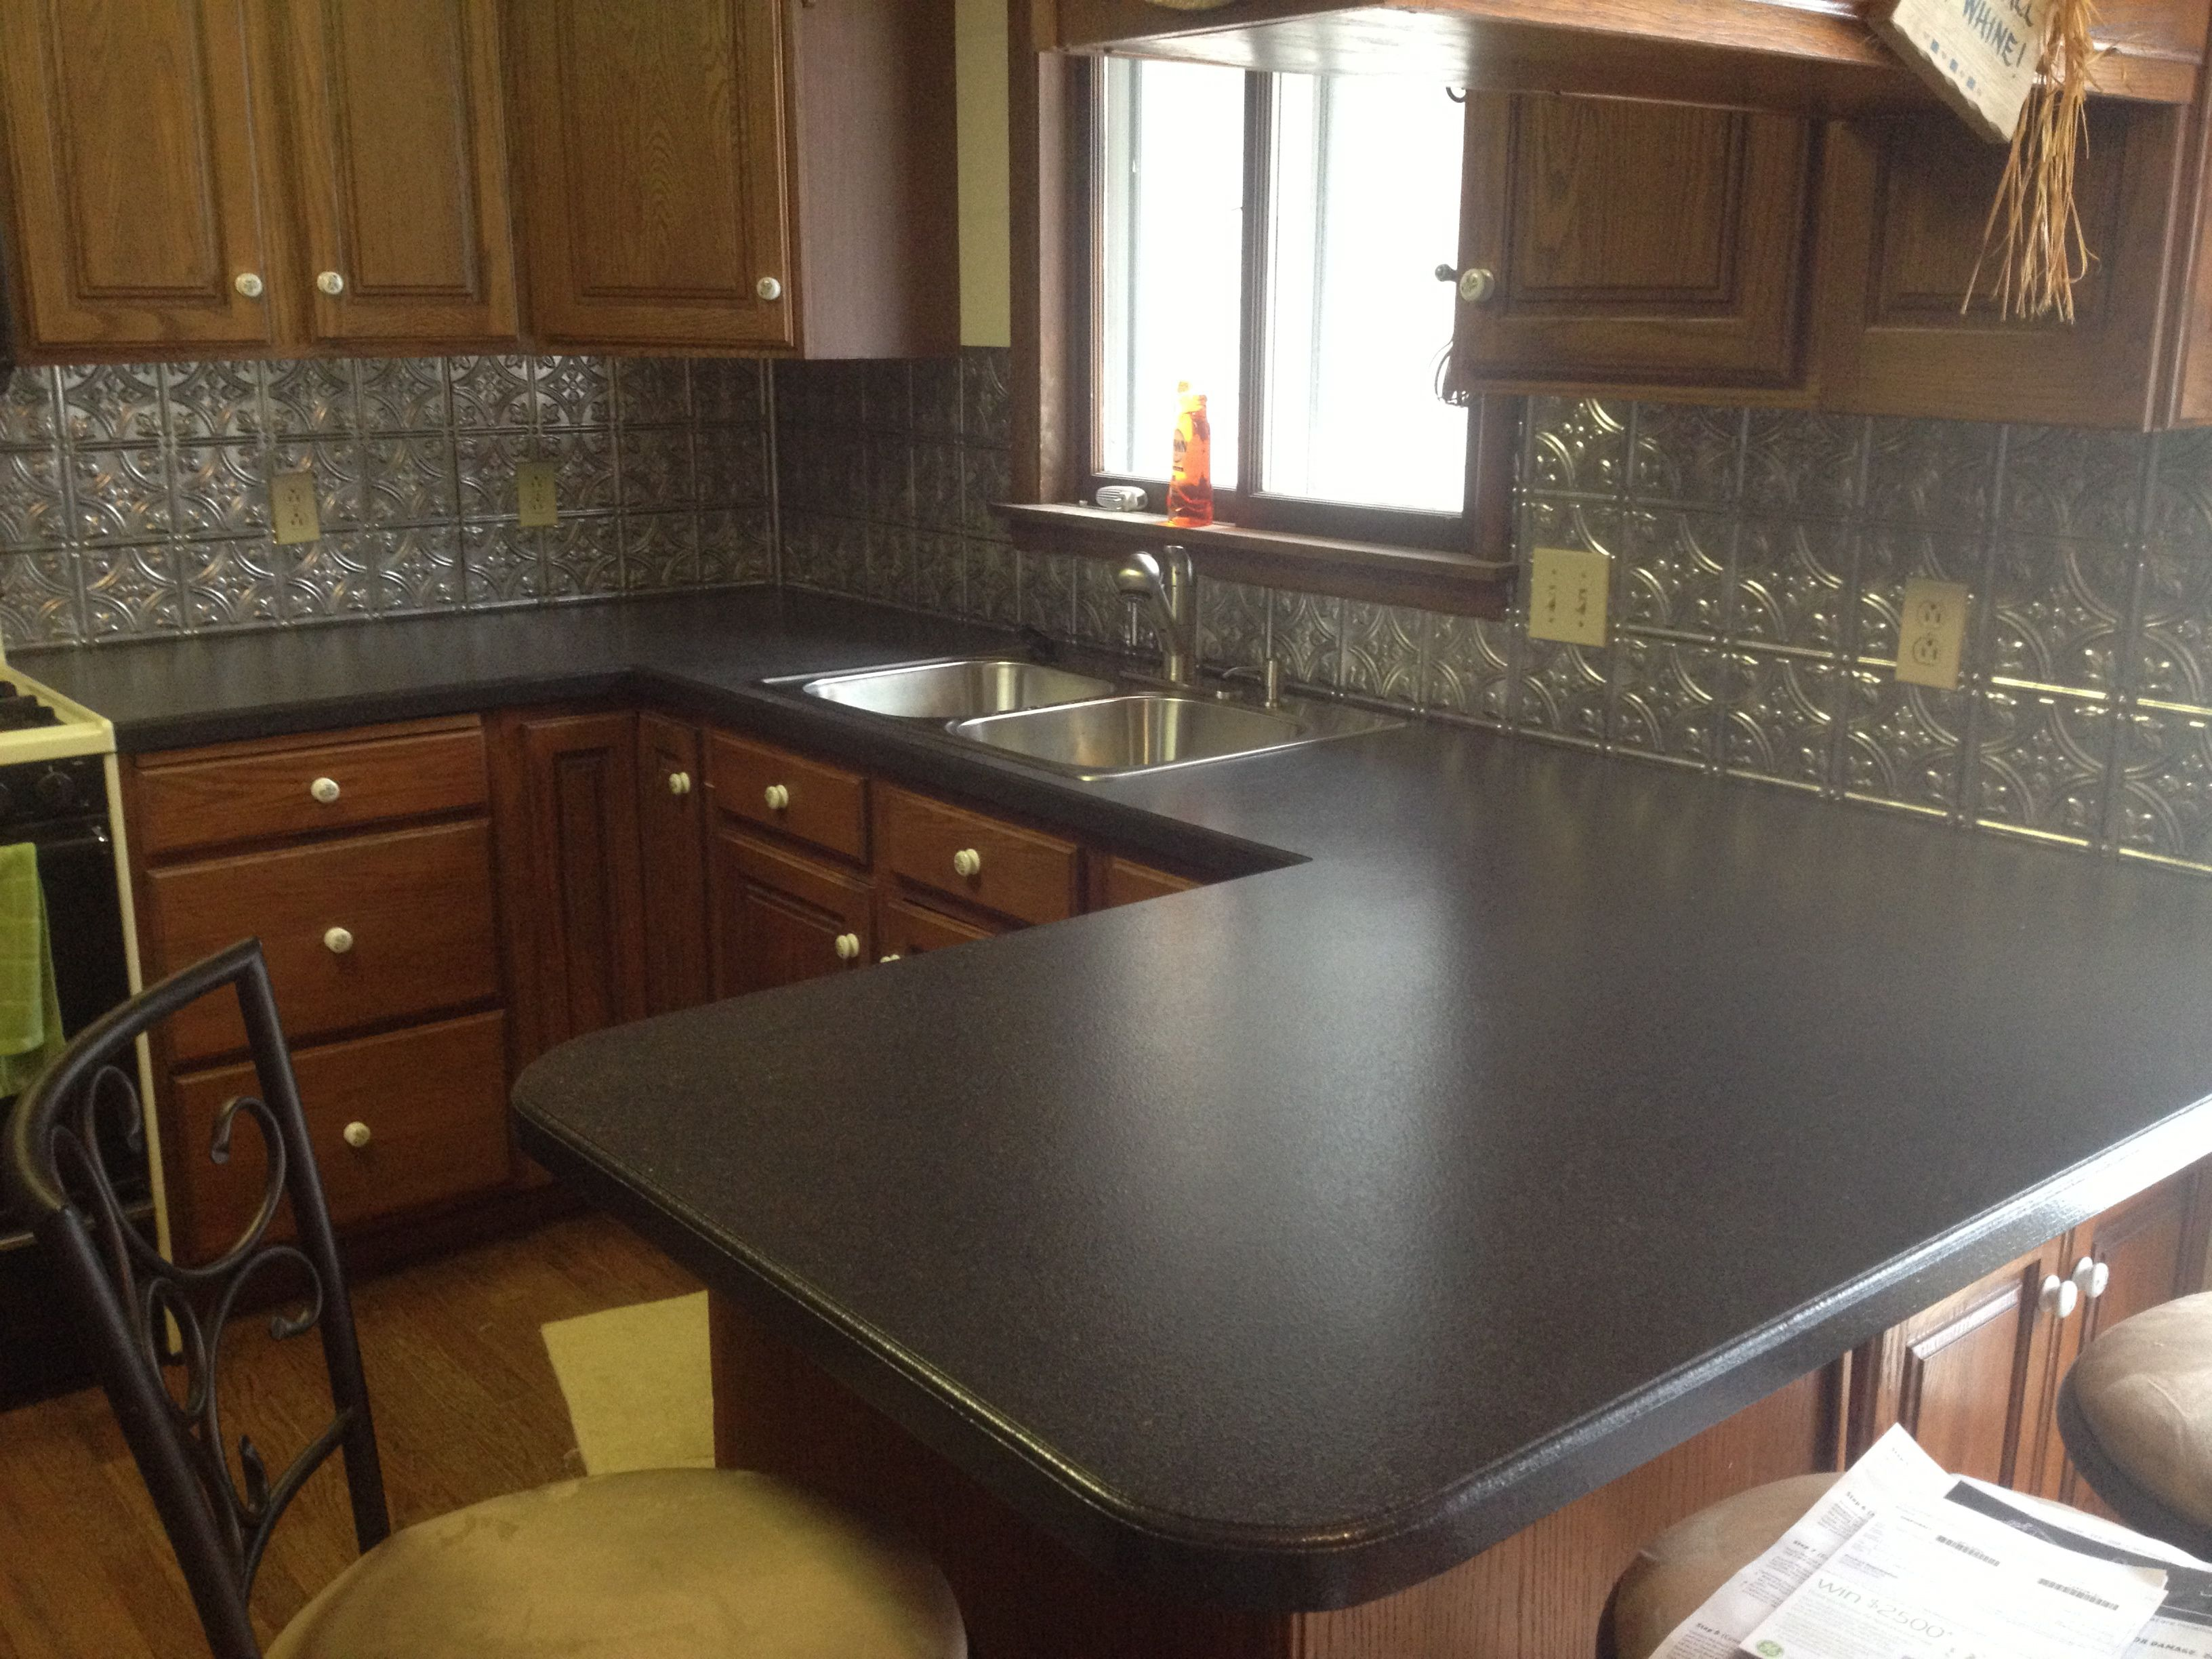 Black Corian Vs Granite Countertop With Tile Backsplash And Glass Window  Plus Wood Cabinets For Kitchen Design